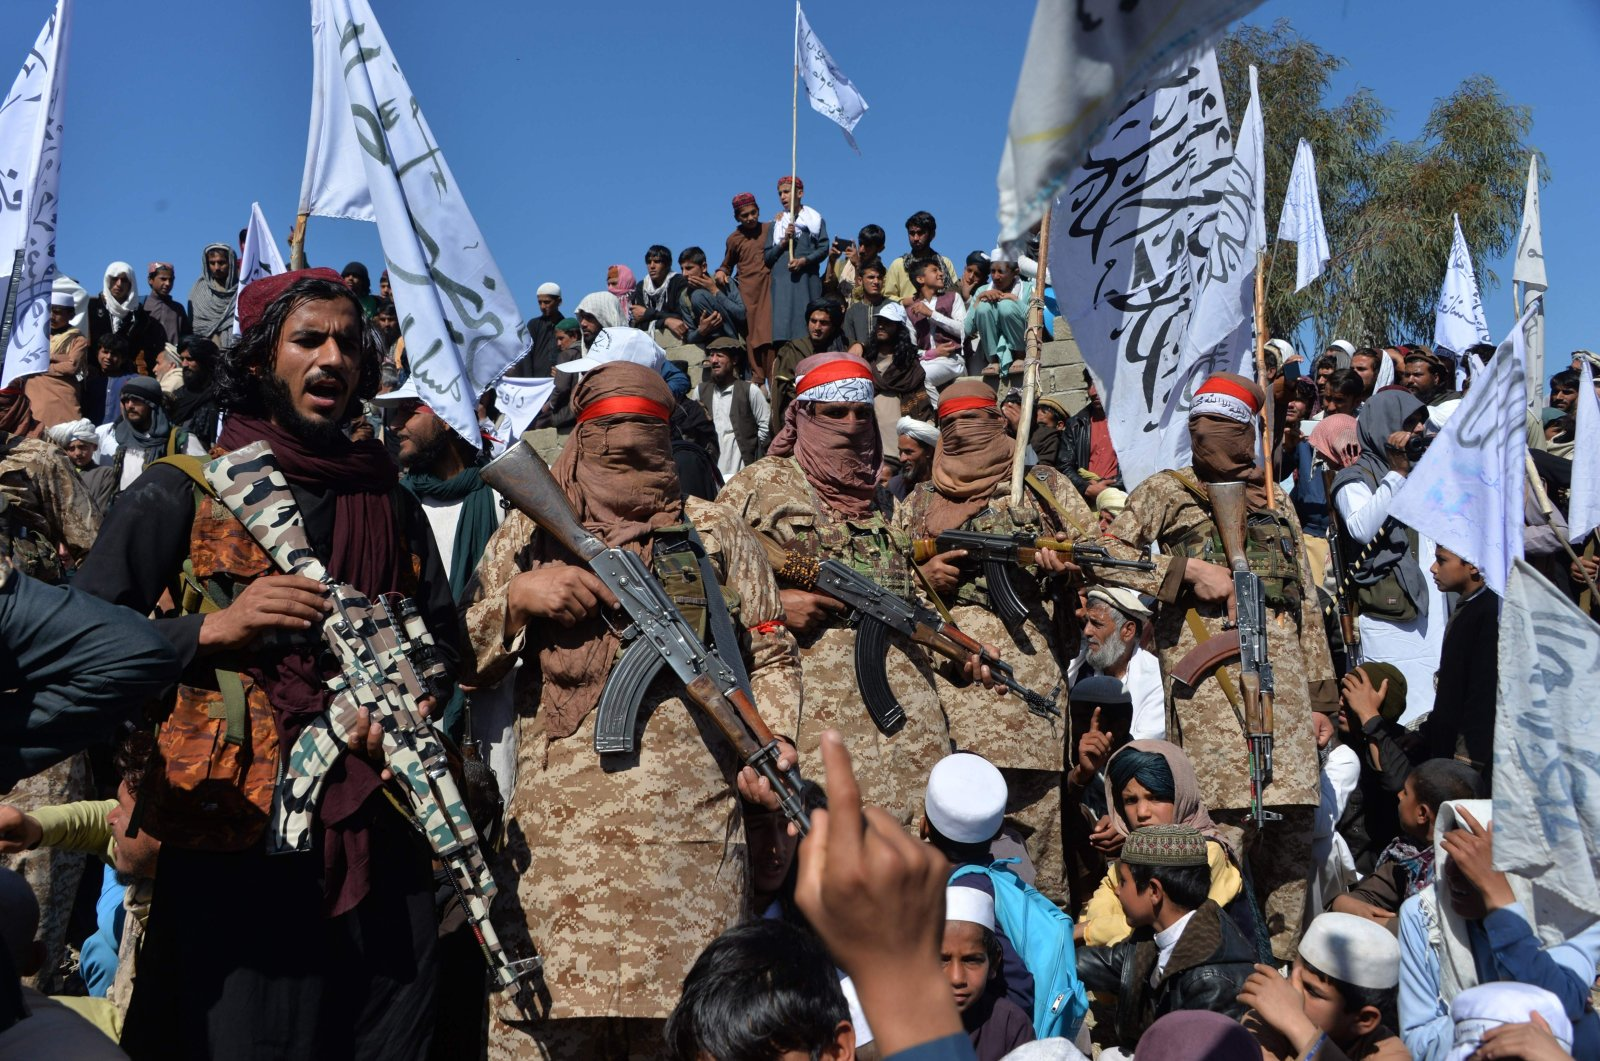 Afghan Taliban militants and villagers attend a gathering as they celebrate the peace deal and their victory in the Afghan conflict, in the Alingar district of Laghman province, Afghanistan, March 2, 2020. (AFP Photo)